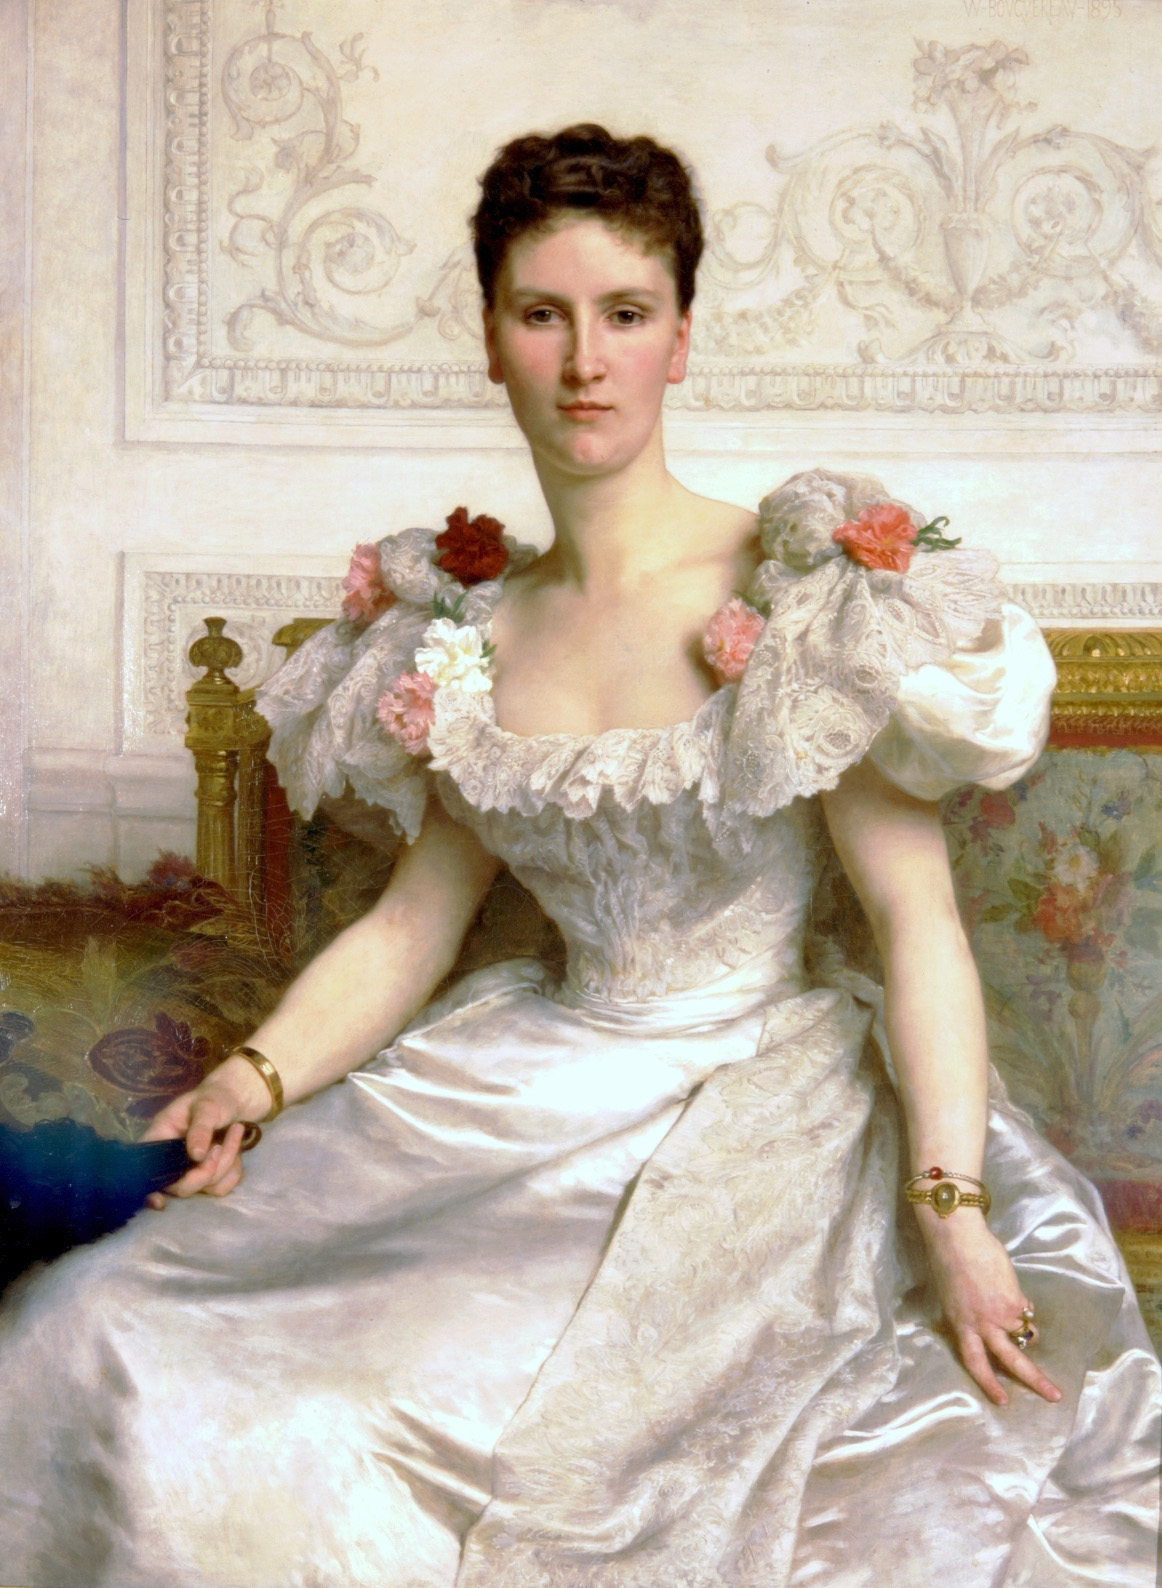 http://uploads7.wikipaintings.org/images/william-adolphe-bouguereau/madame-la-comtesse-de-cambaceres-1895.jpg